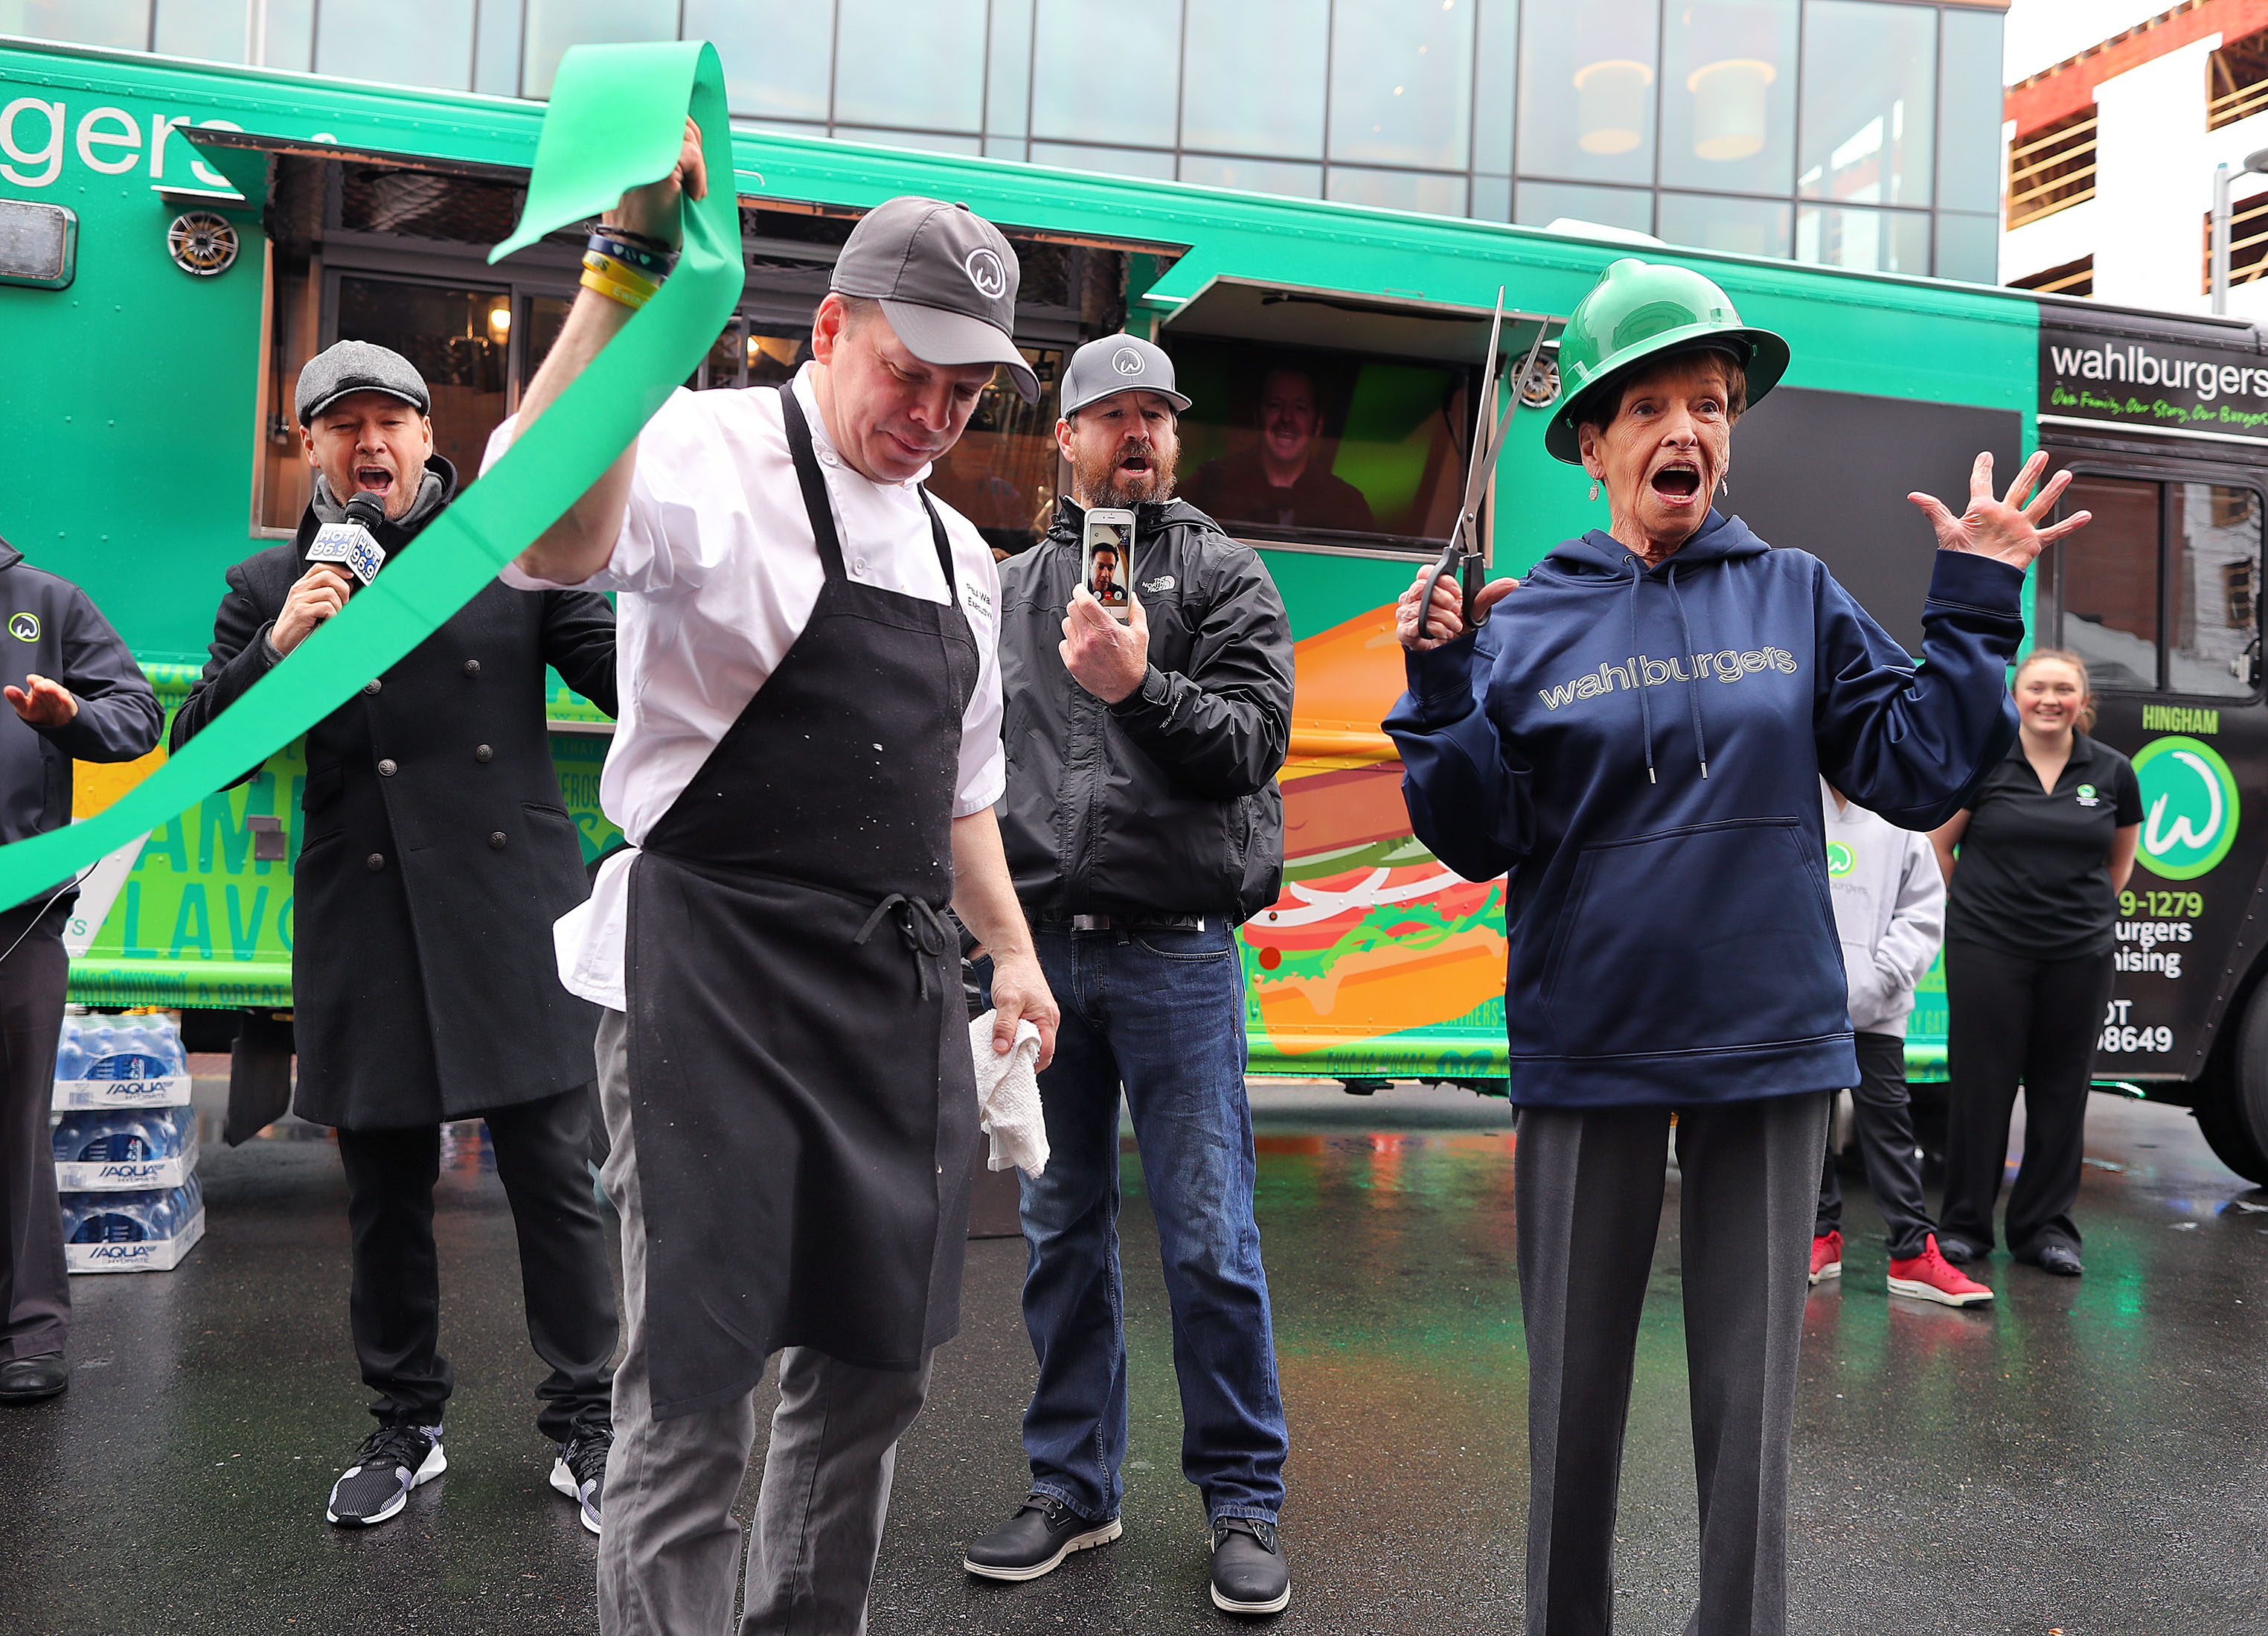 Wahlbergs Launch Wahlburgers Food Truck In Dorchester